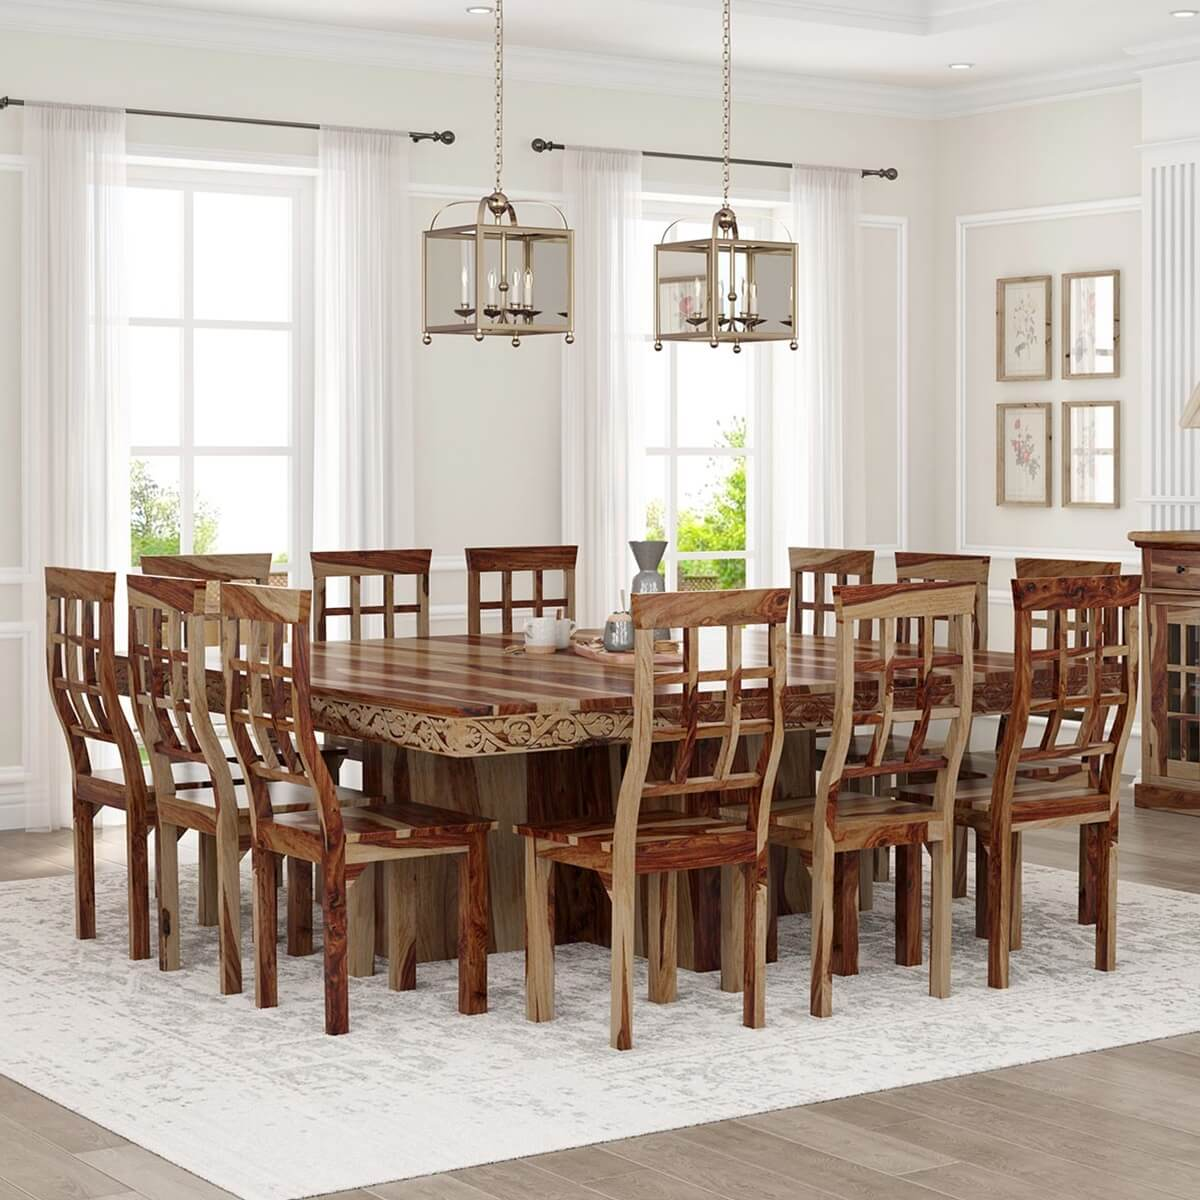 Dallas ranch large square dining room table and chair set for Large dining chairs